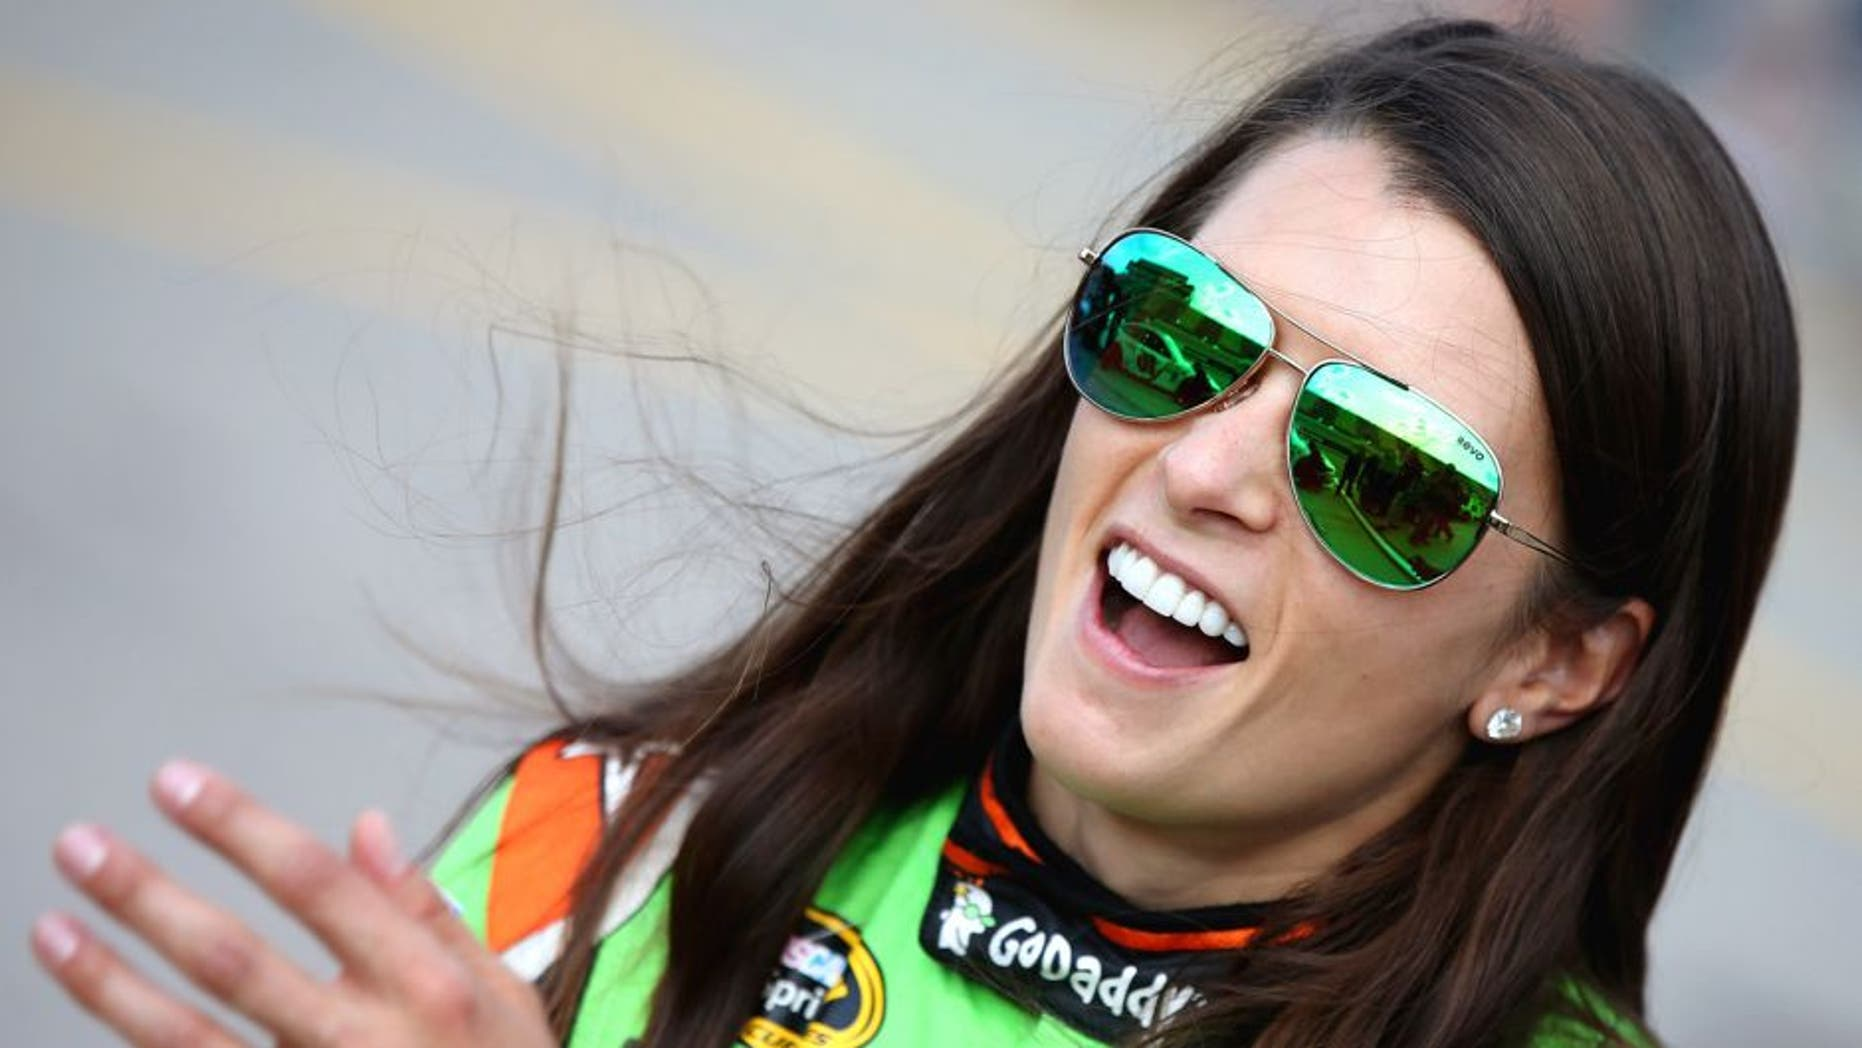 Danica Patrick, driver of the #10 GoDaddy Chevrolet, stands on the grid during qualifying for the NASCAR Sprint Cup Series Pure Michigan 400 at Michigan International Speedway on August 14, 2015 in Brooklyn, Michigan. (Photo by Sean Gardner/NASCAR via Getty Images)